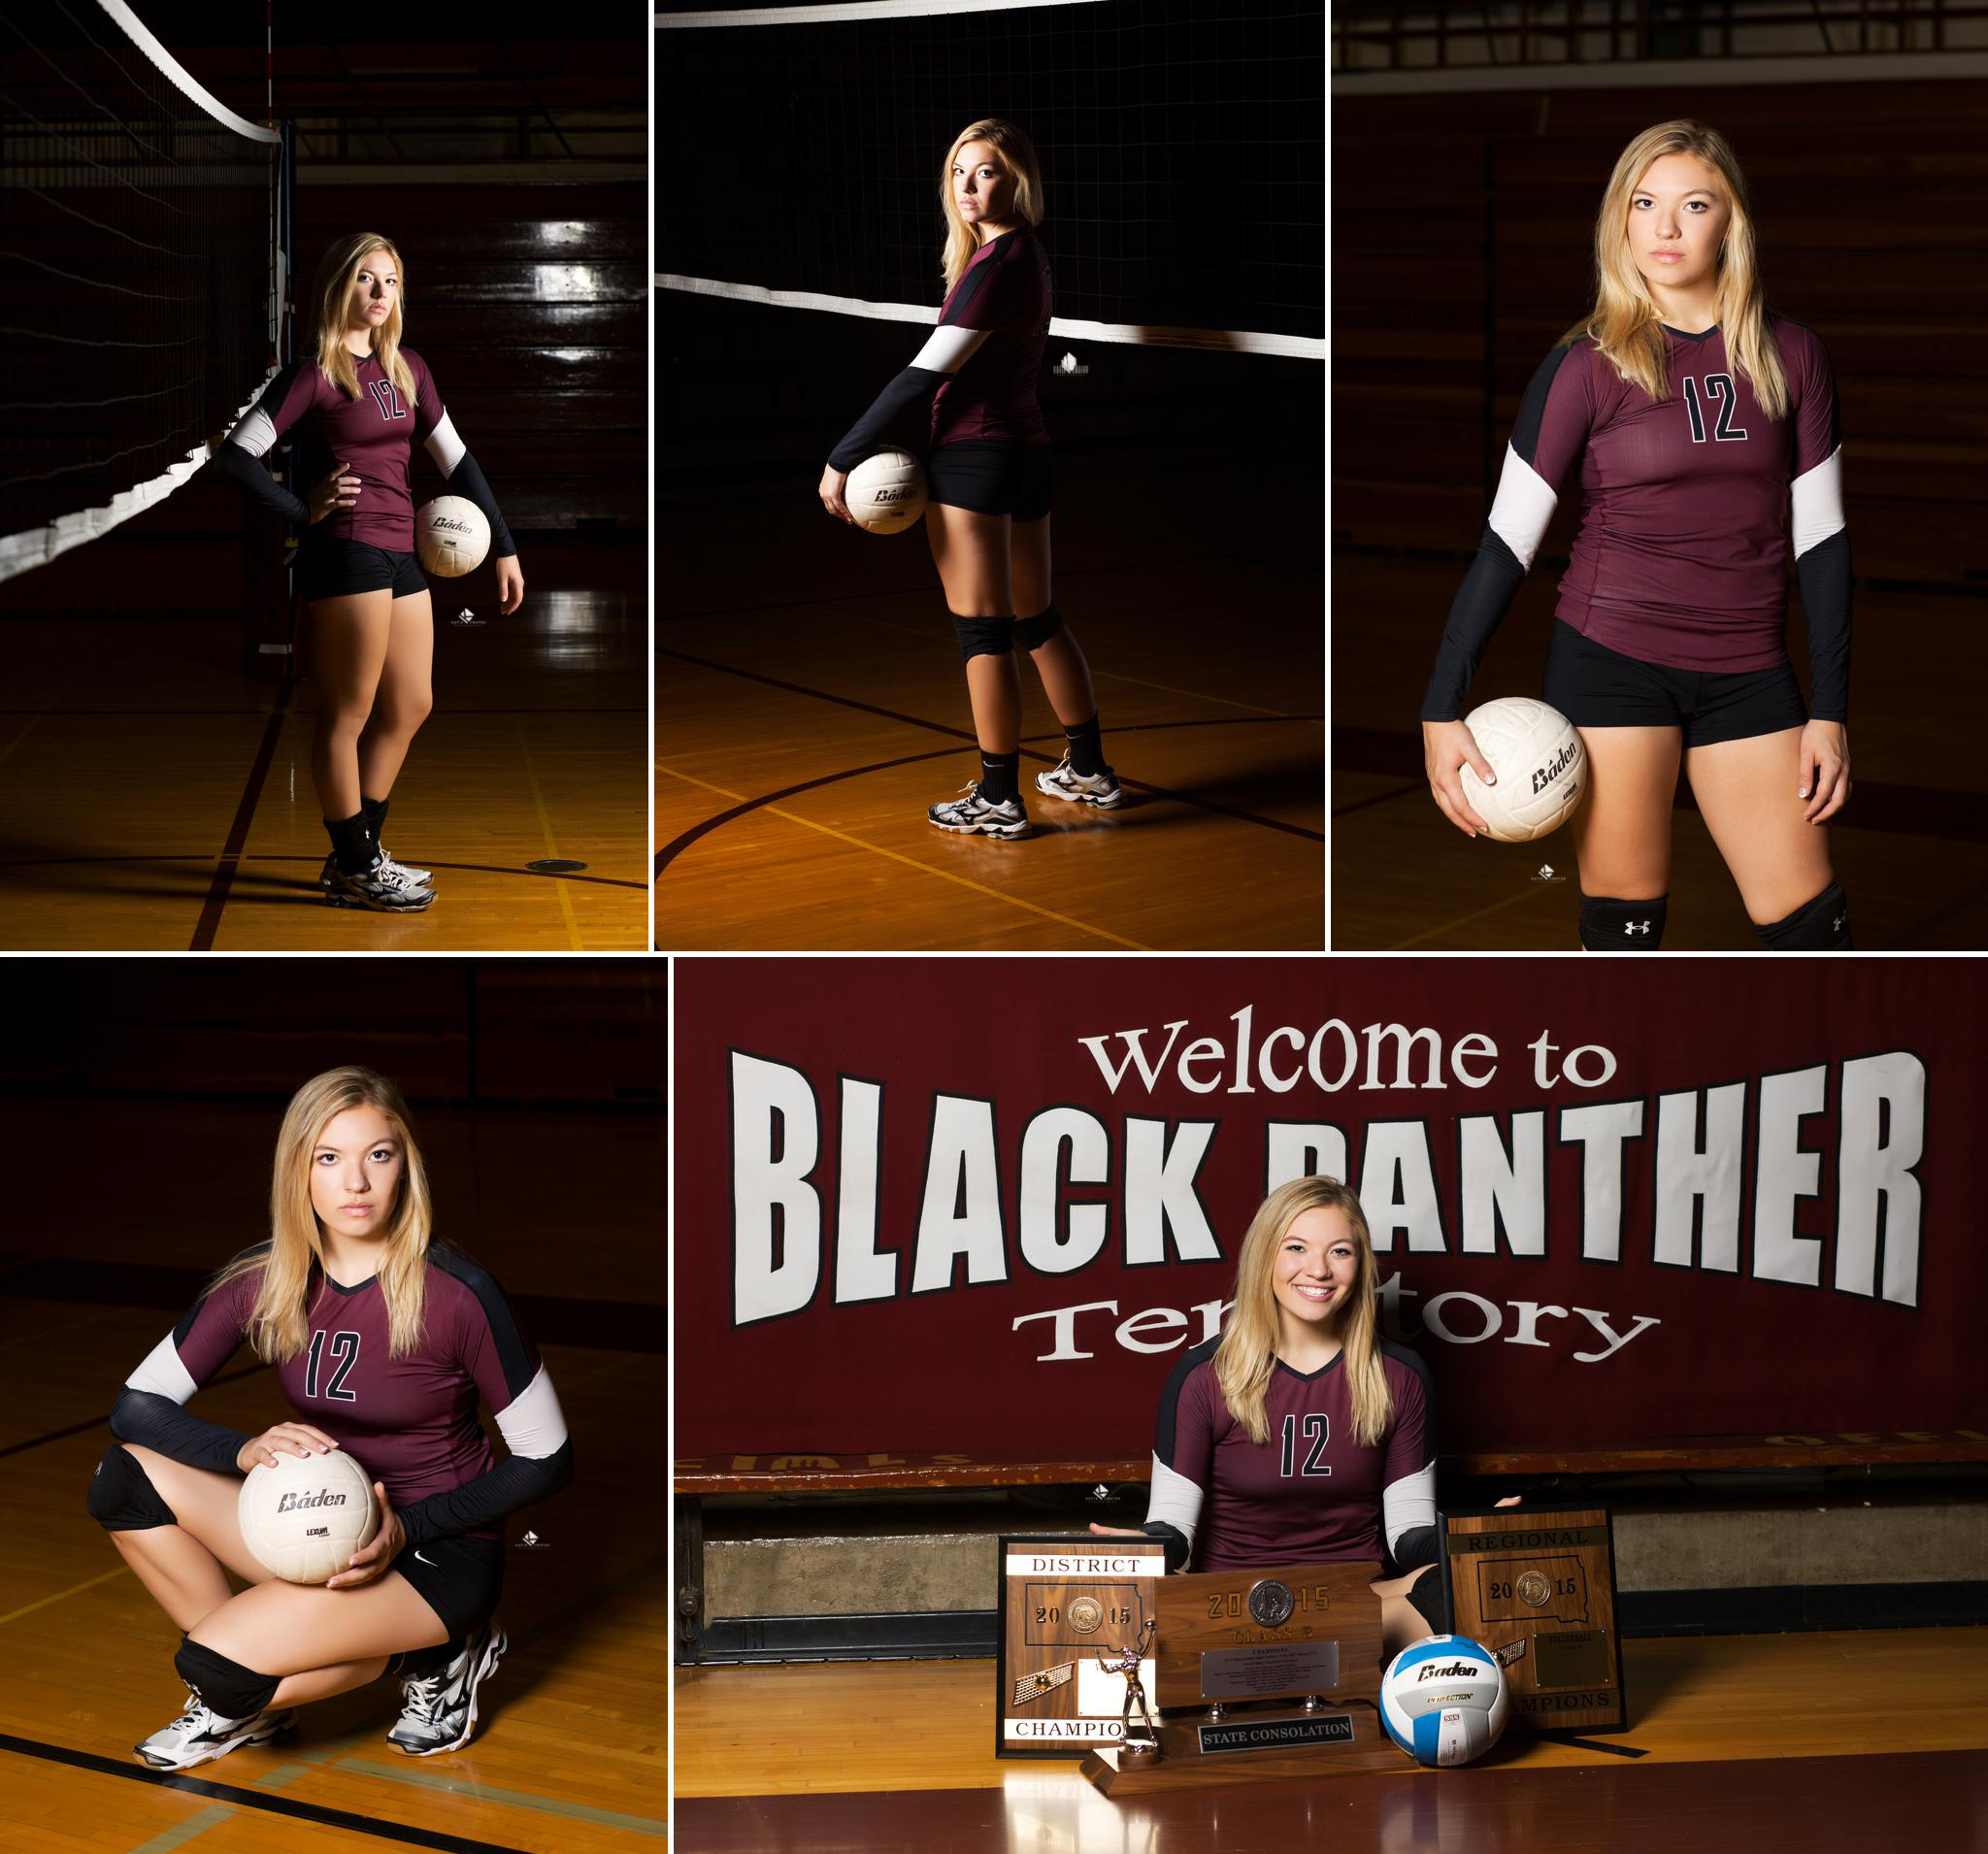 Volleyball Senior Pictures by Katie Swatek Photography | Sport Senior Pictures by Katie Swatek Photography | Gym Senior Pictures by Katie Swatek Photography | South Dakota Senior Pictures by Katie Swatek Photography